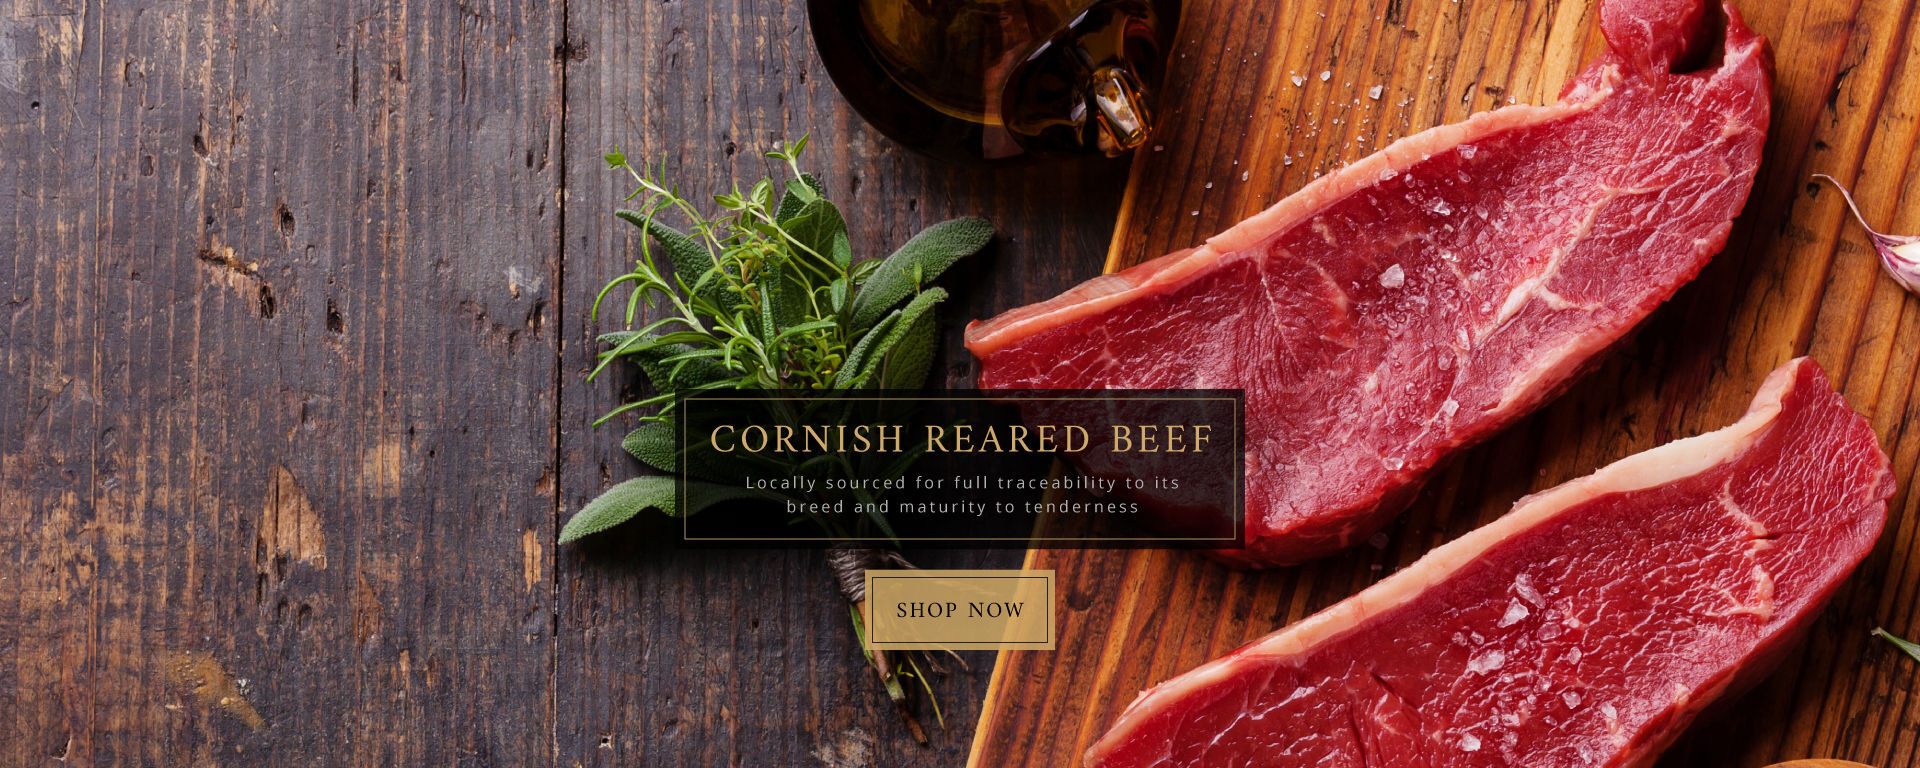 Cornish Reared Beef